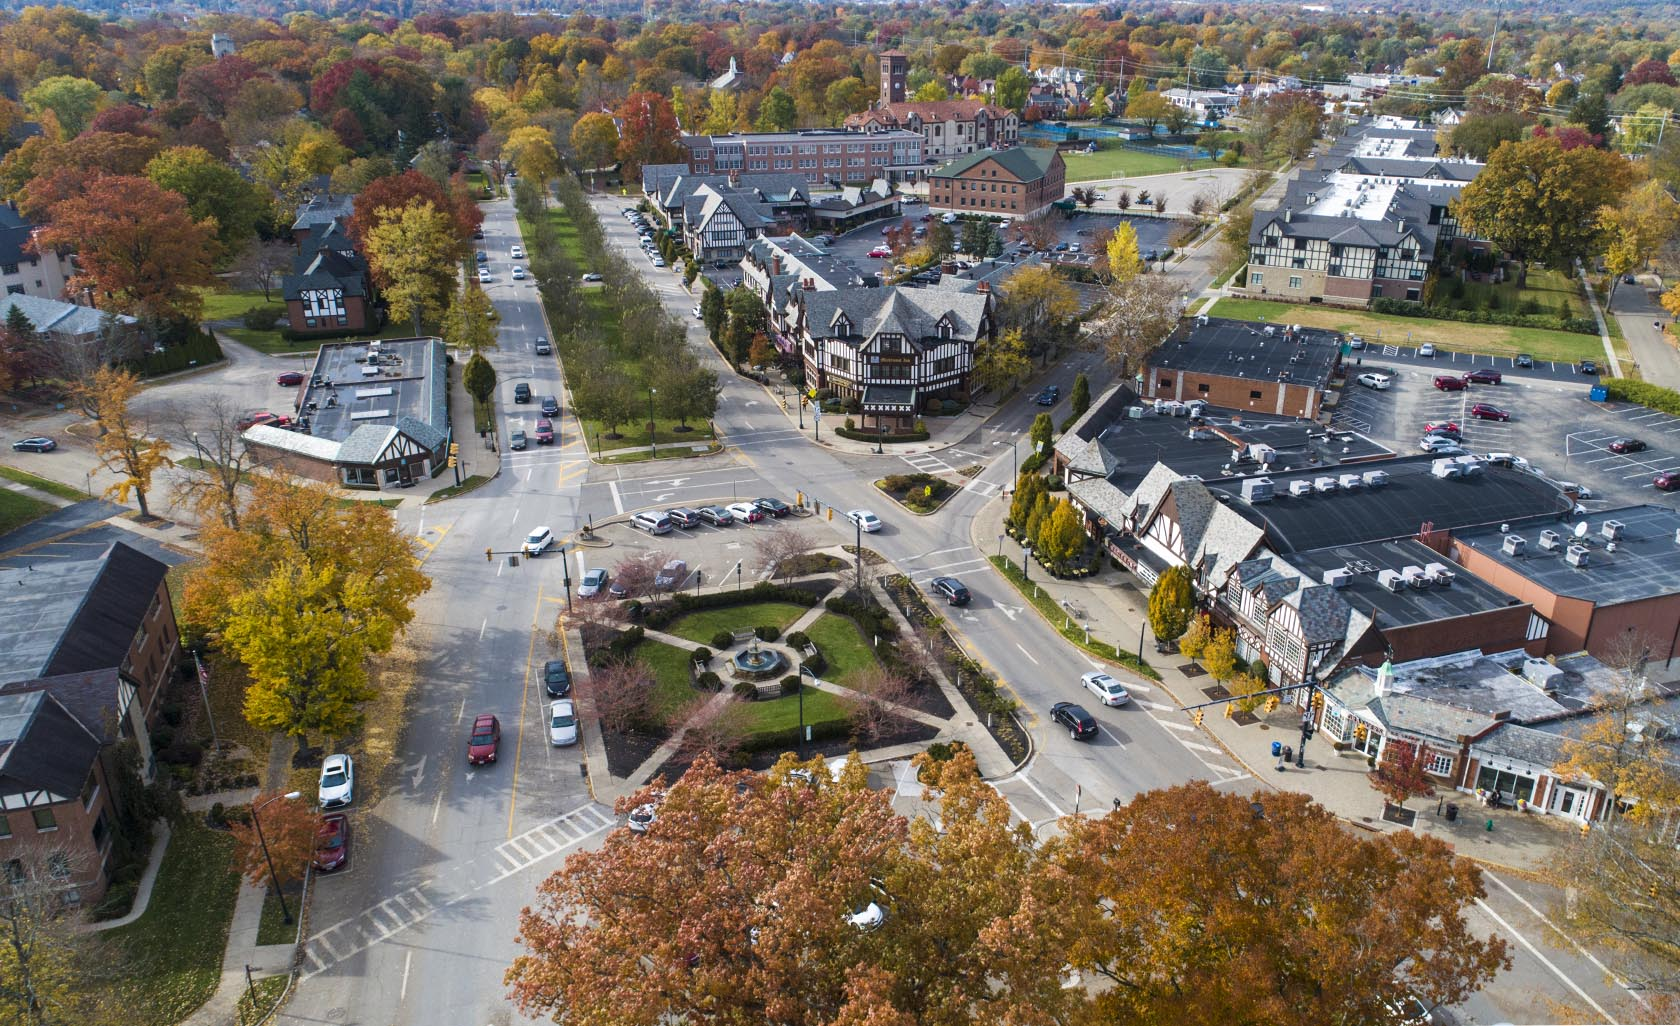 aerial view of the historic village of mariemont